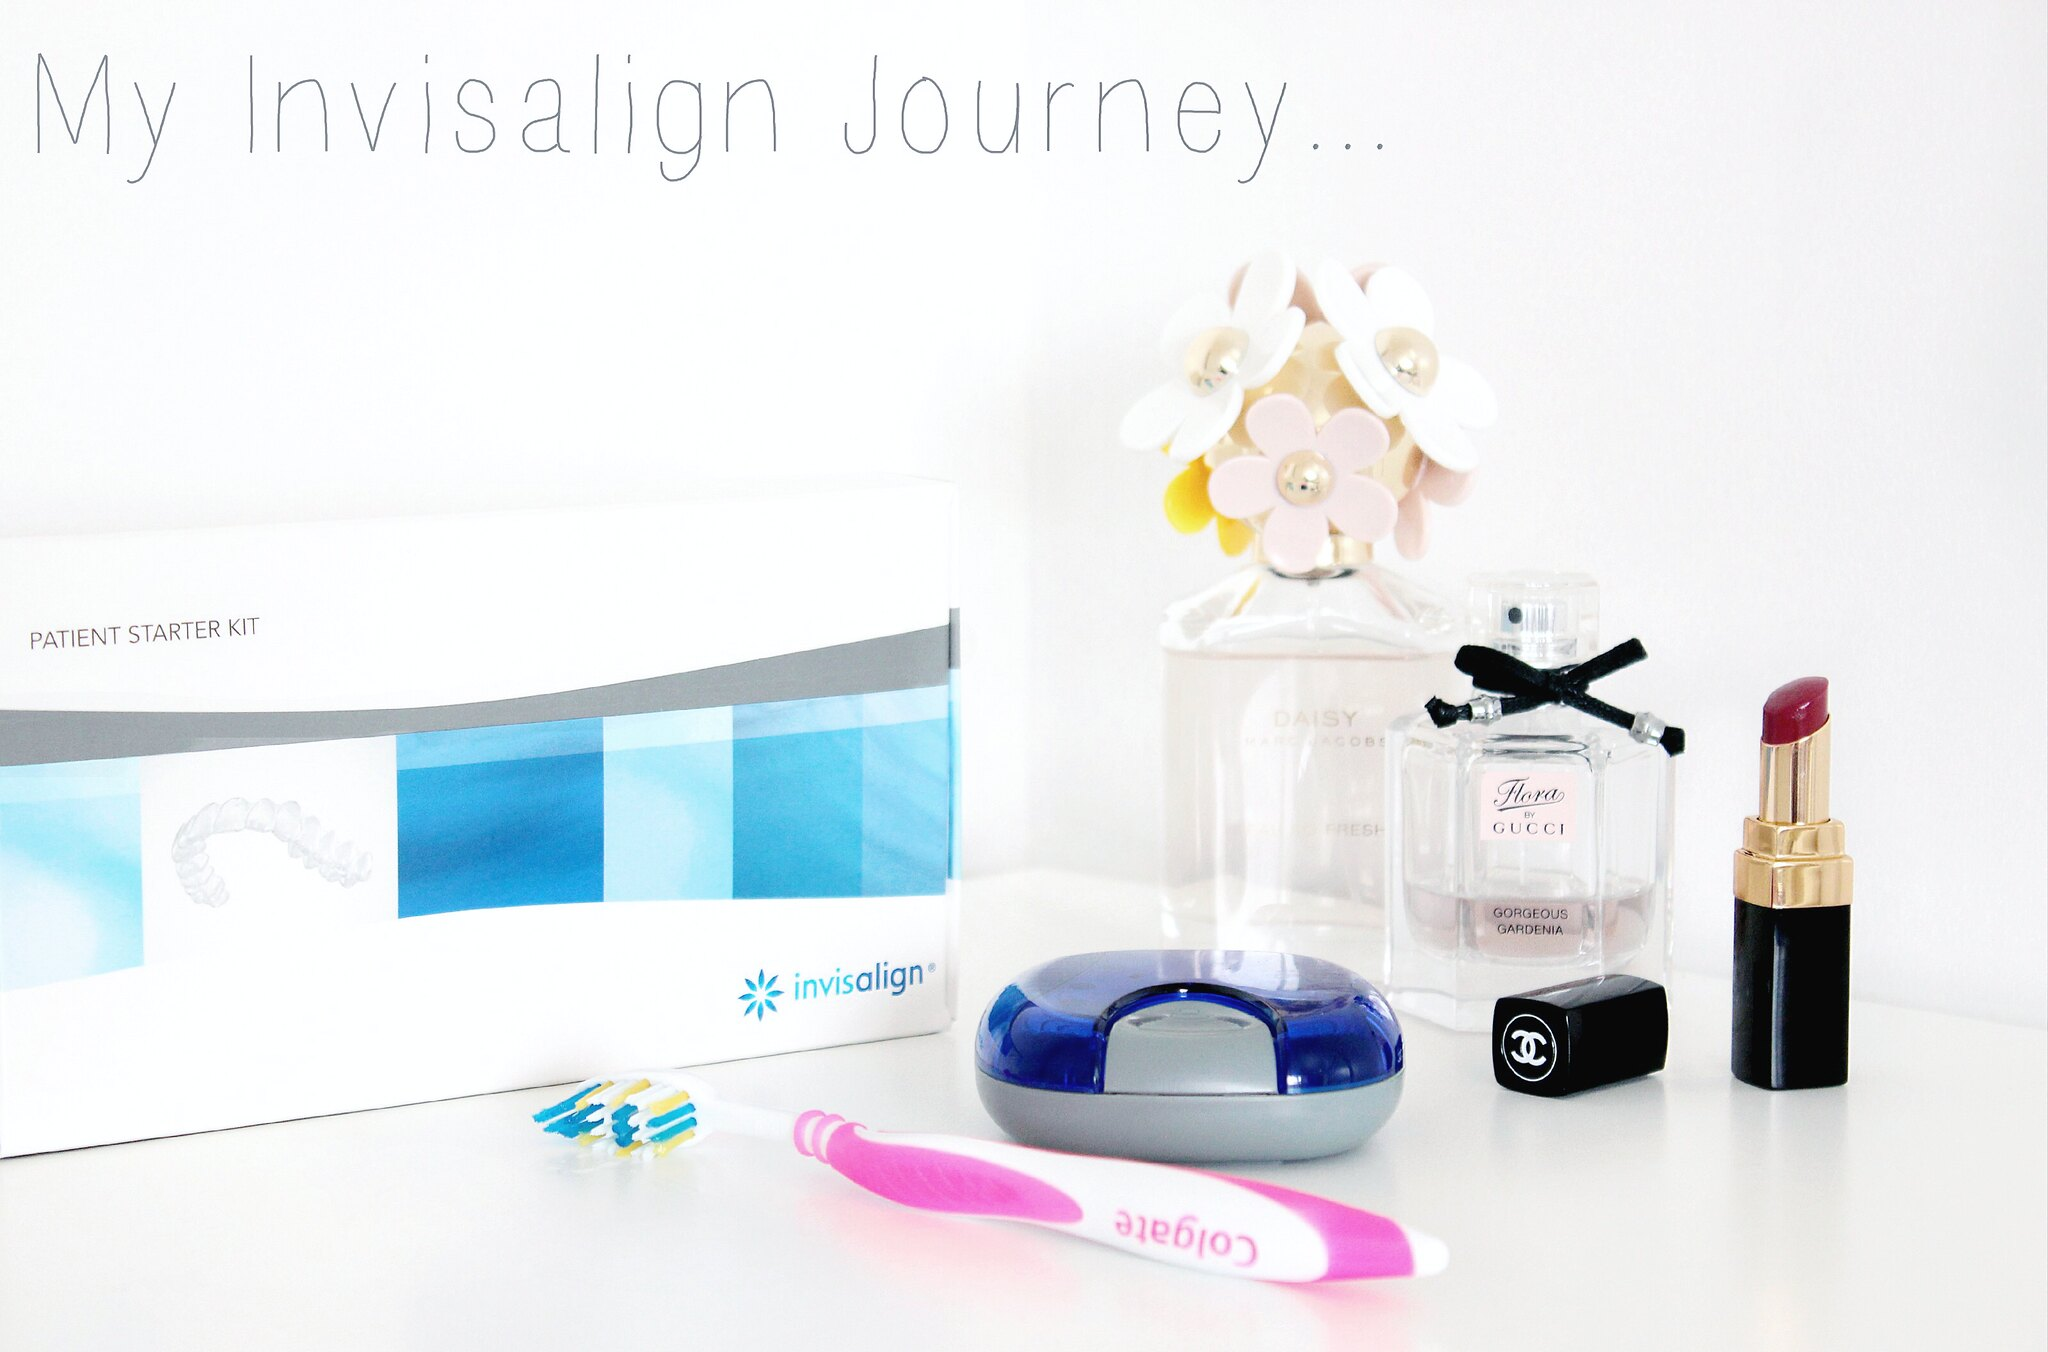 Invisalign-Journey